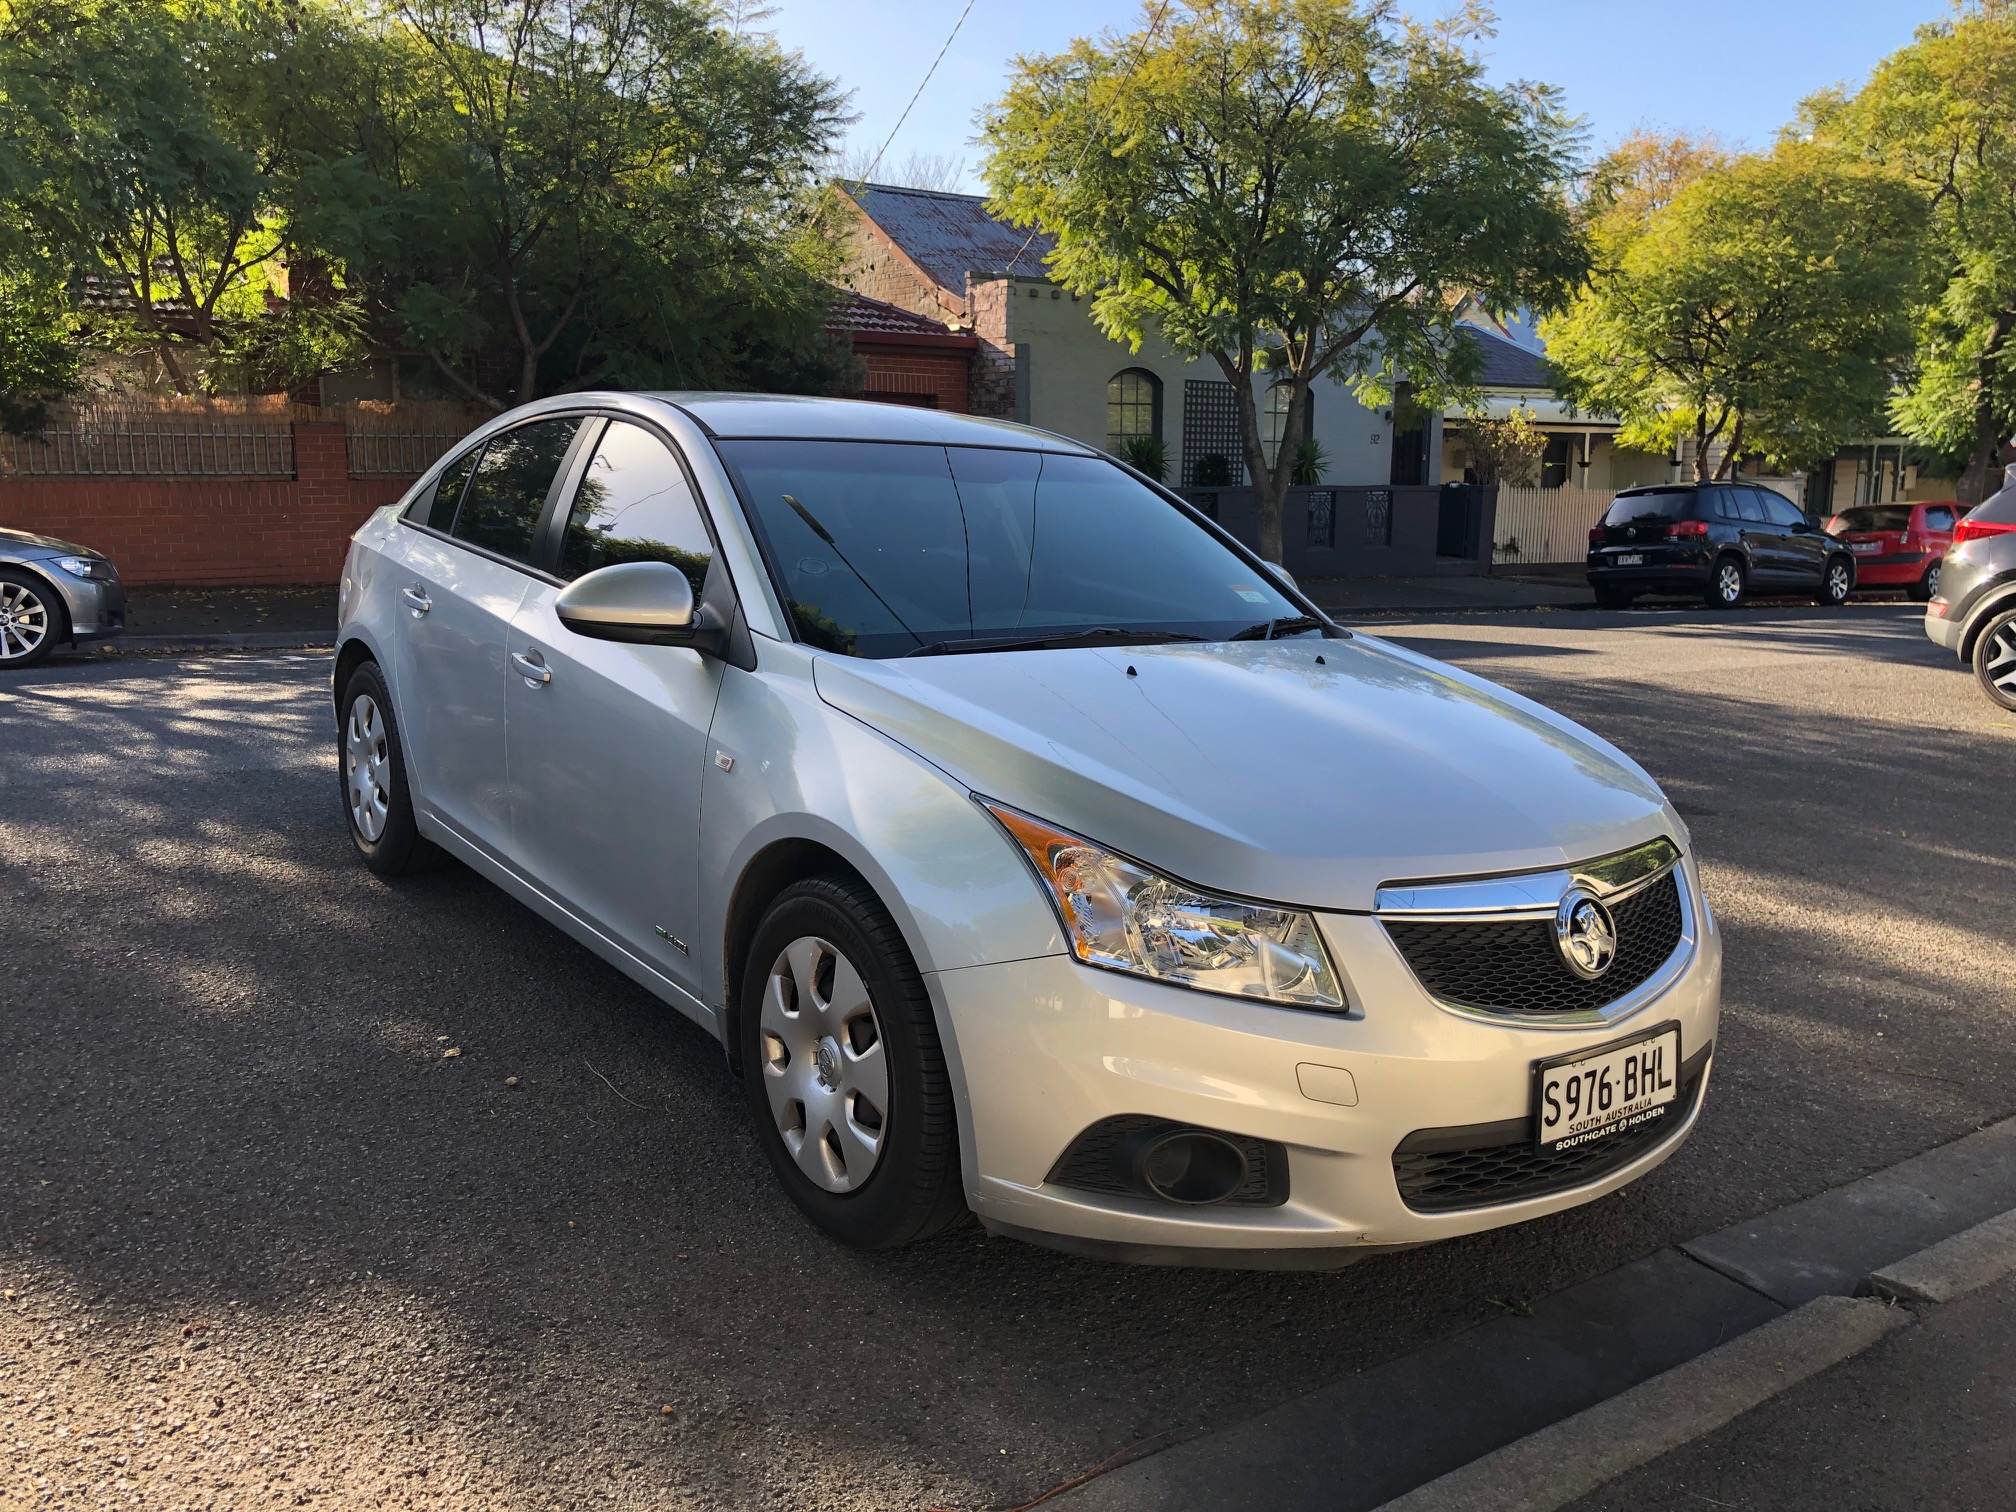 Picture of Lachlan's 2012 Holden Cruze